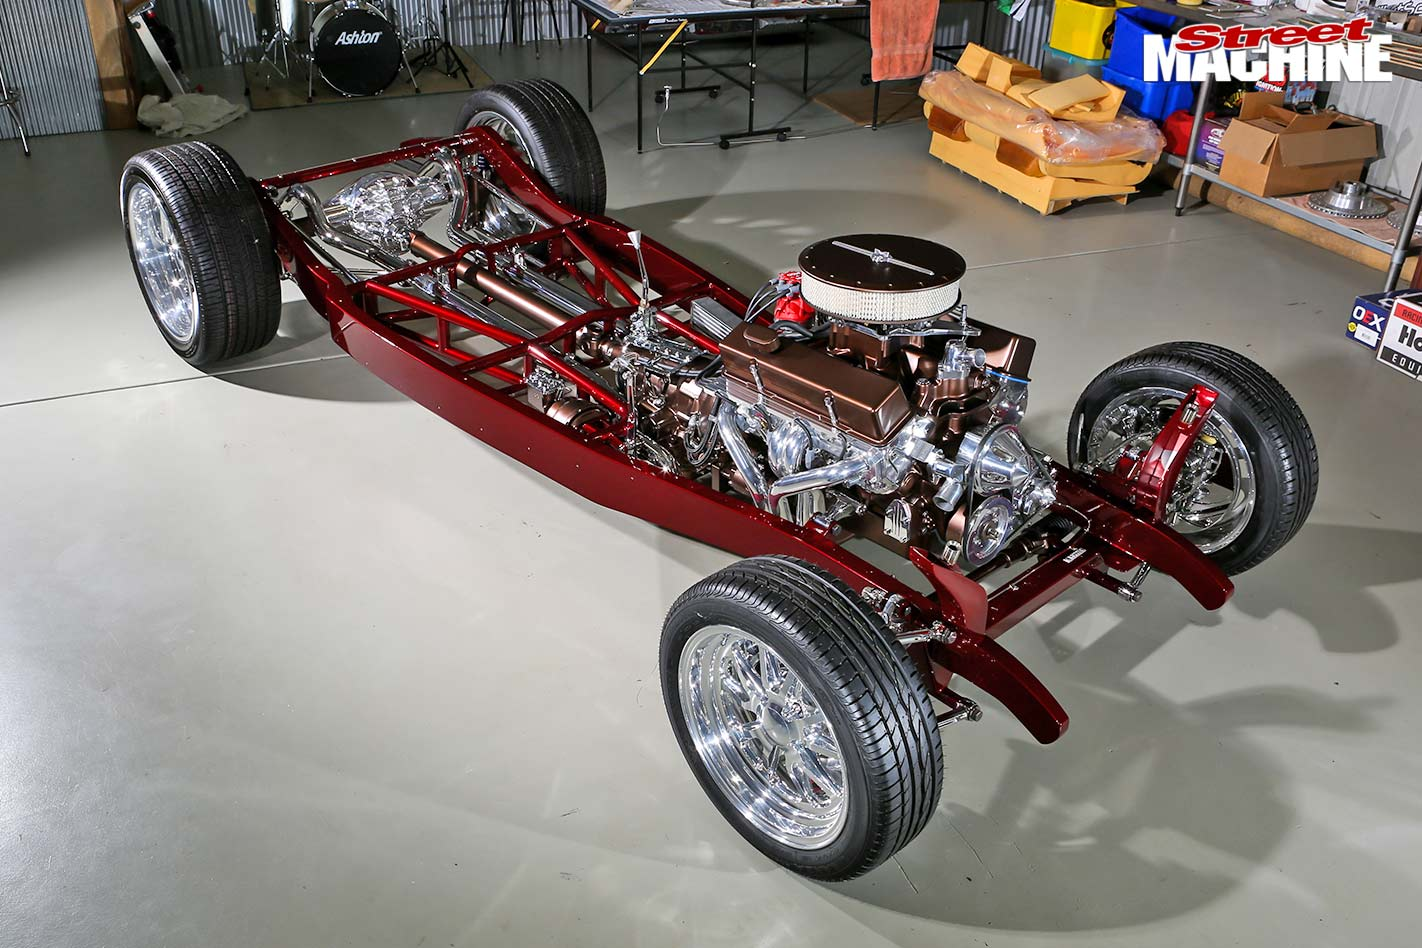 Ford Tudor chassis